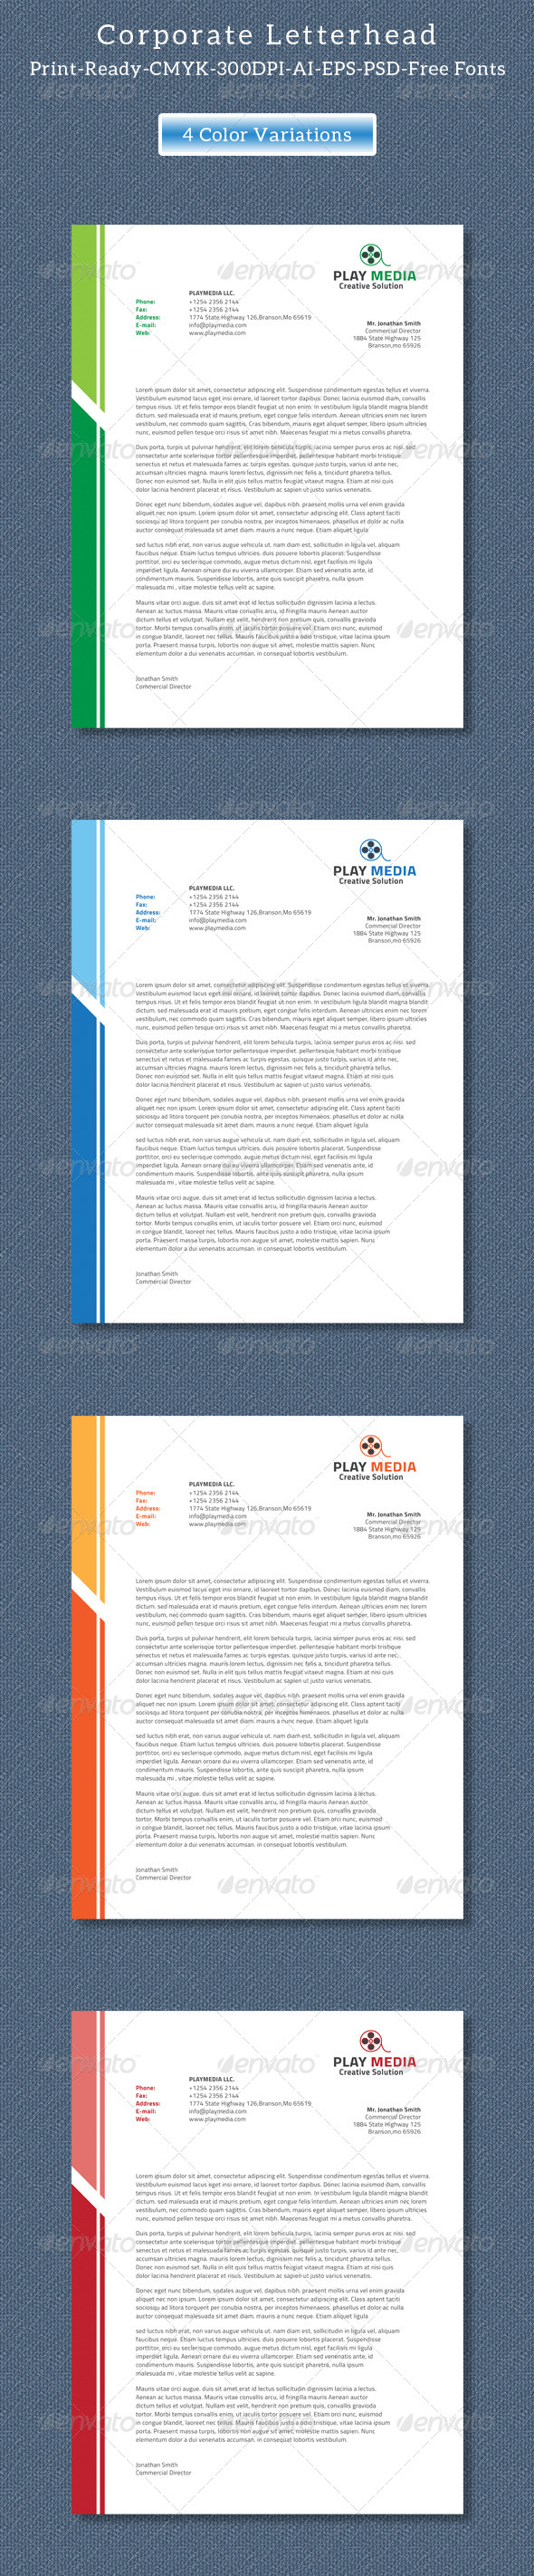 GraphicRiver Corporate Letterhead Vol.2 8325970